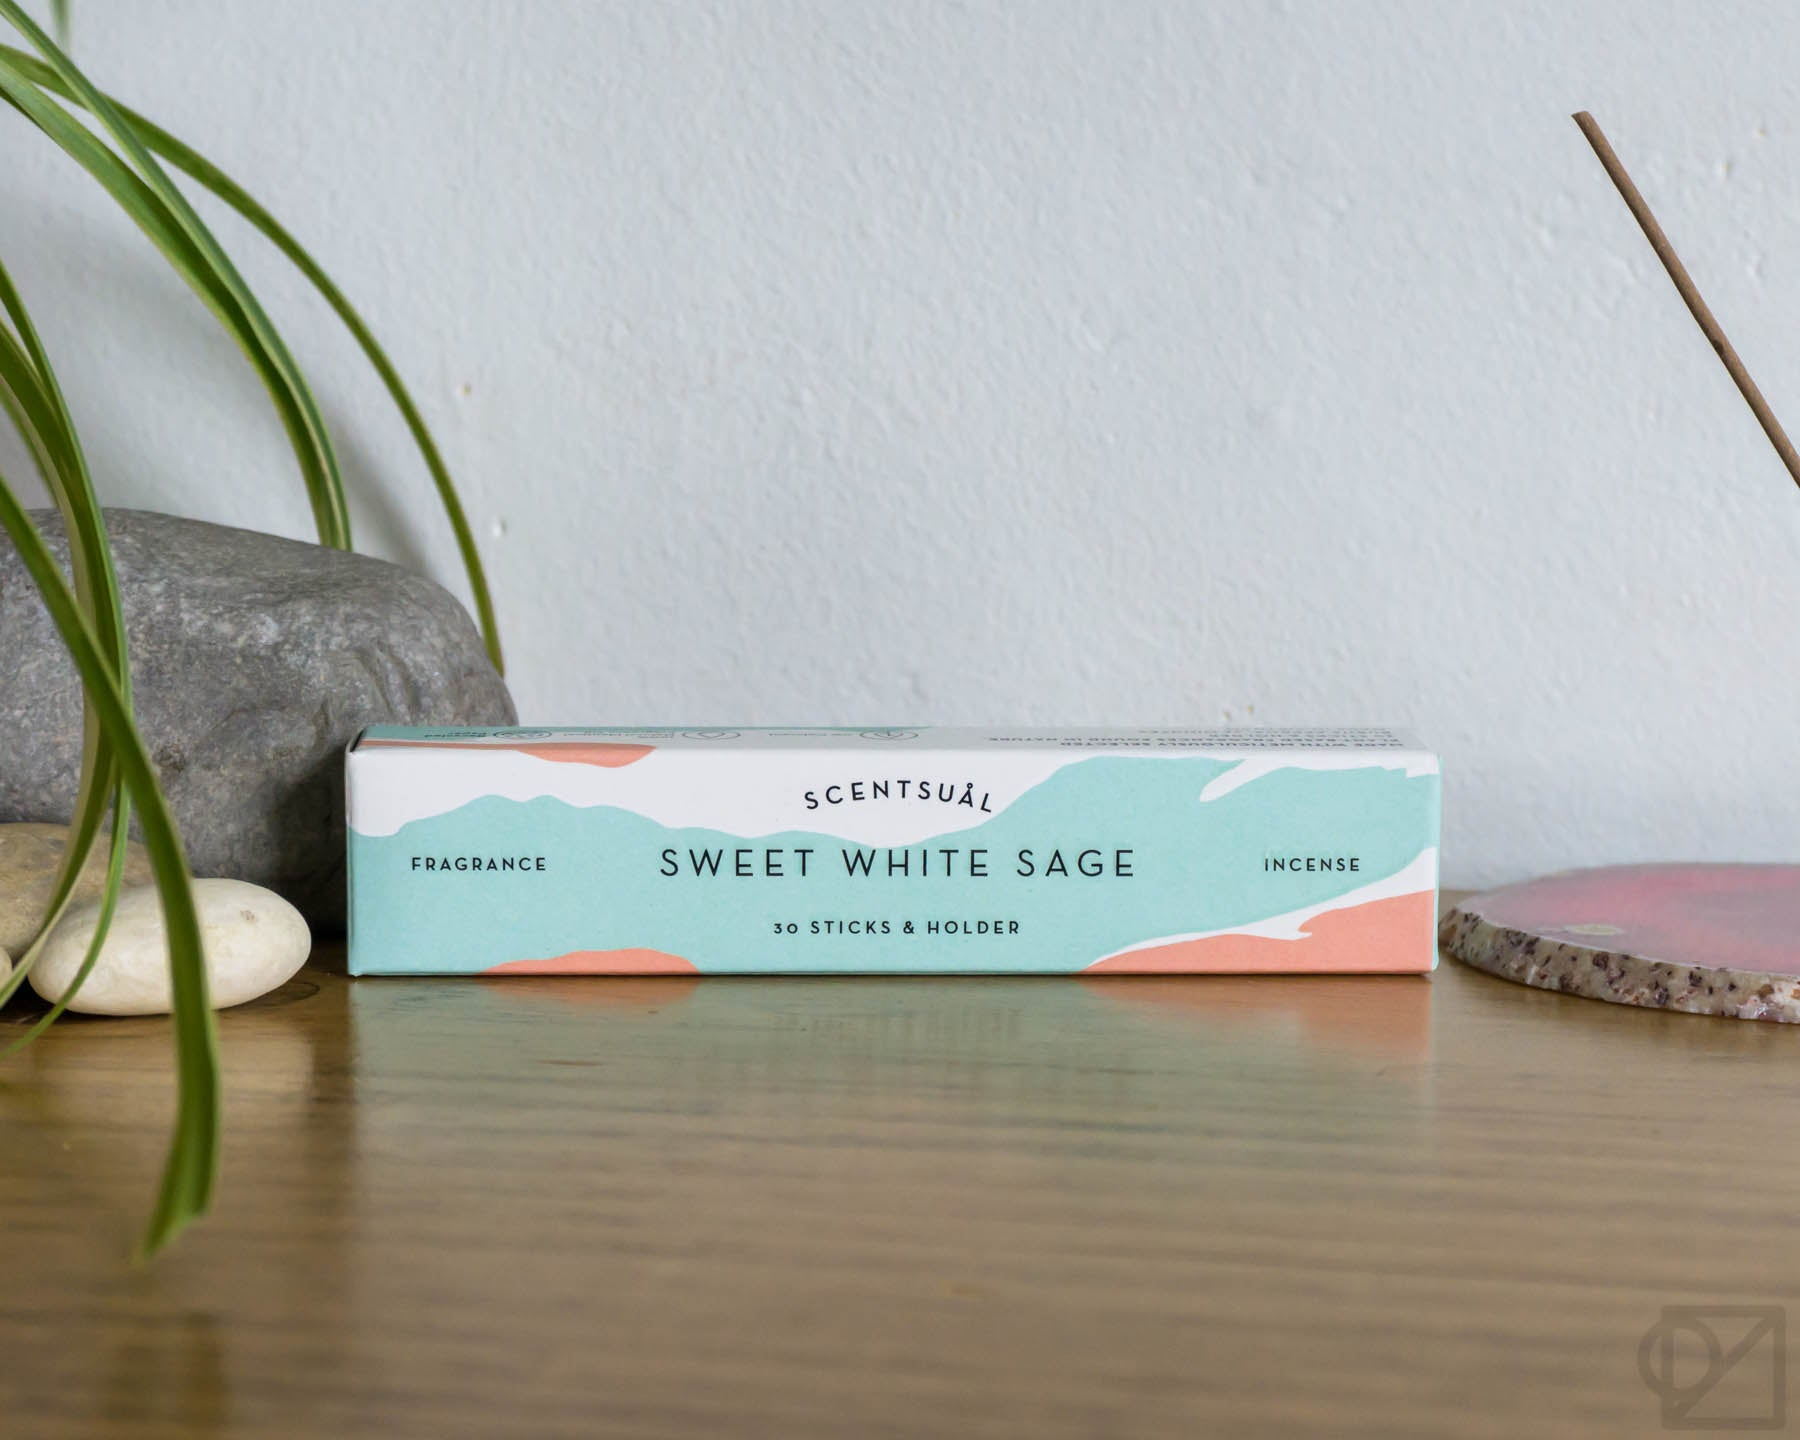 Scentsual Incense Sweet White Sage